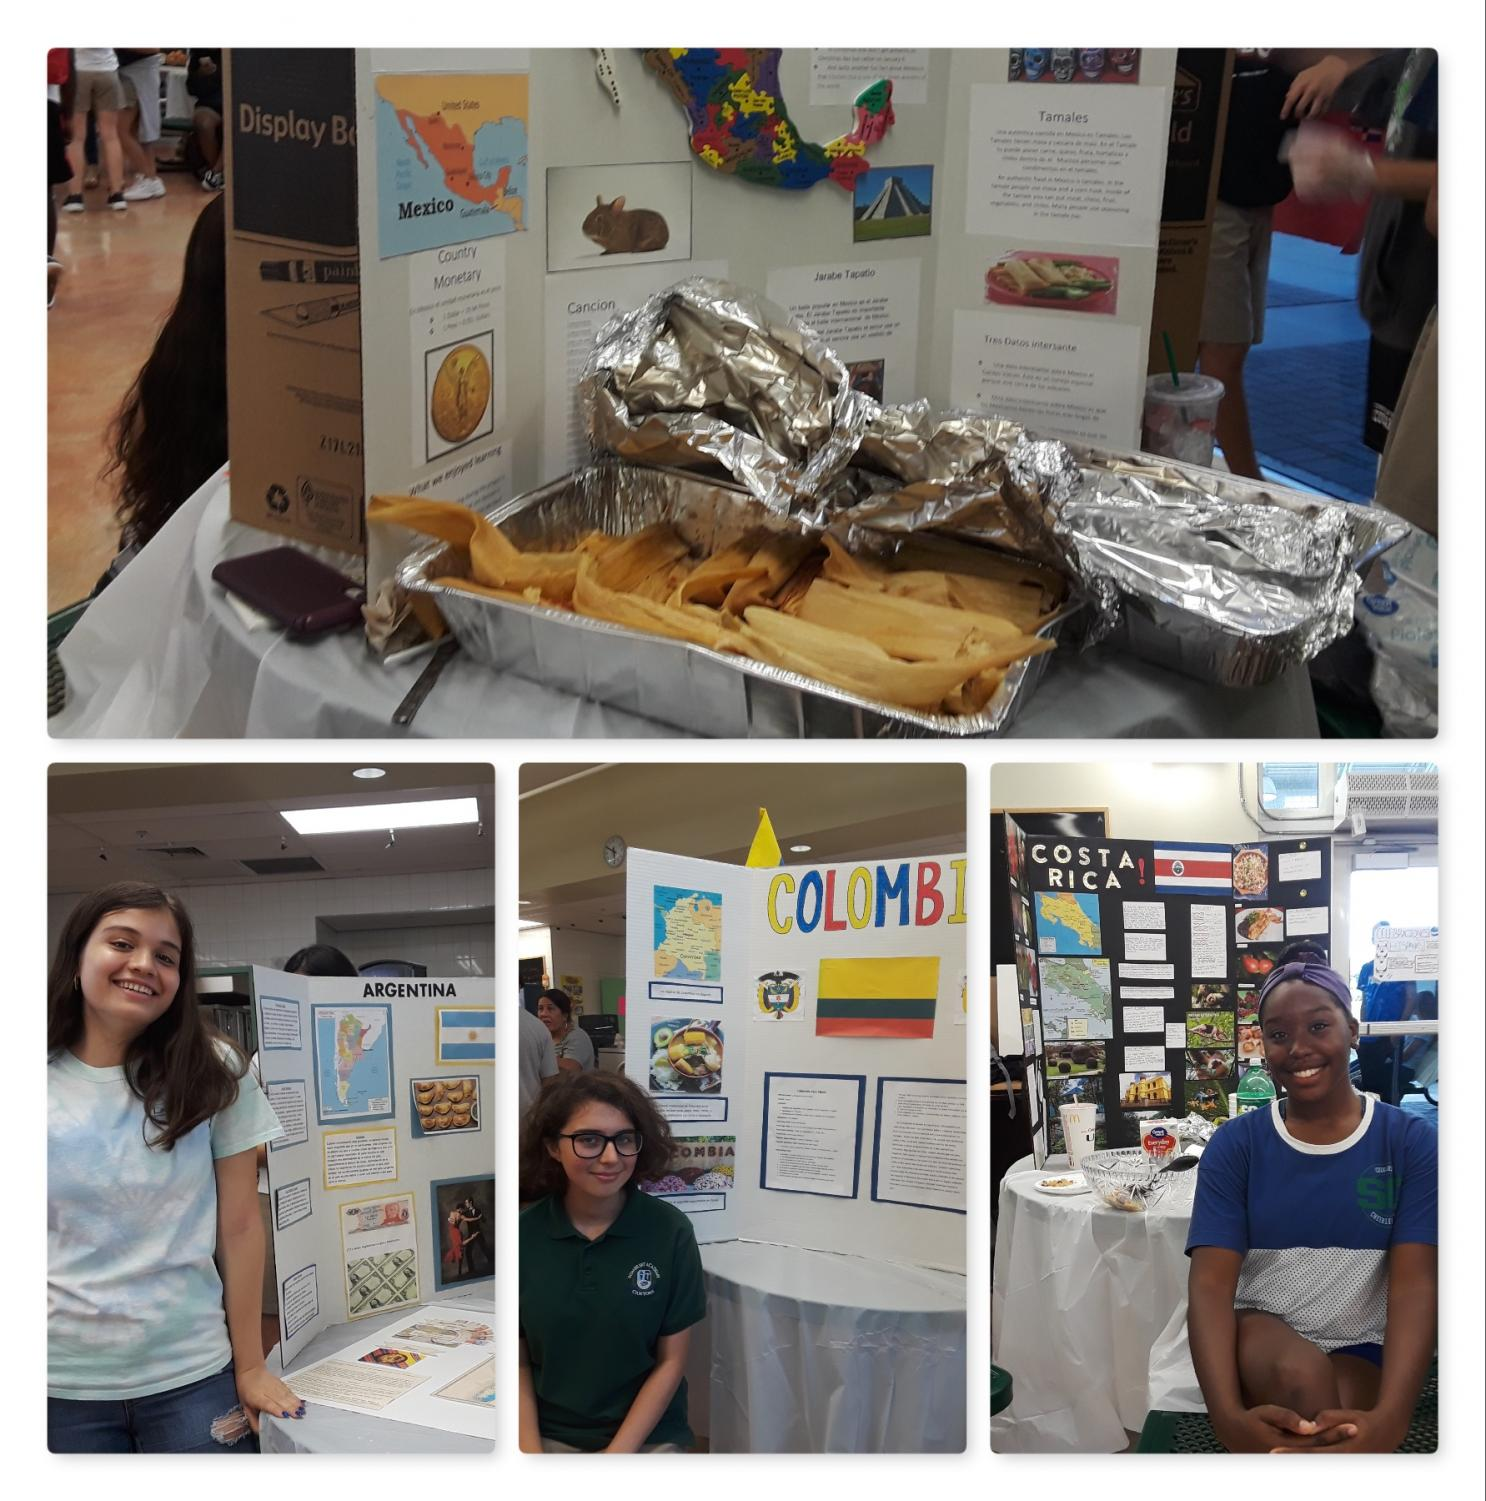 Students+present+their+projects+and+express+their+love+of+the+Hispanic+culture+and+food.